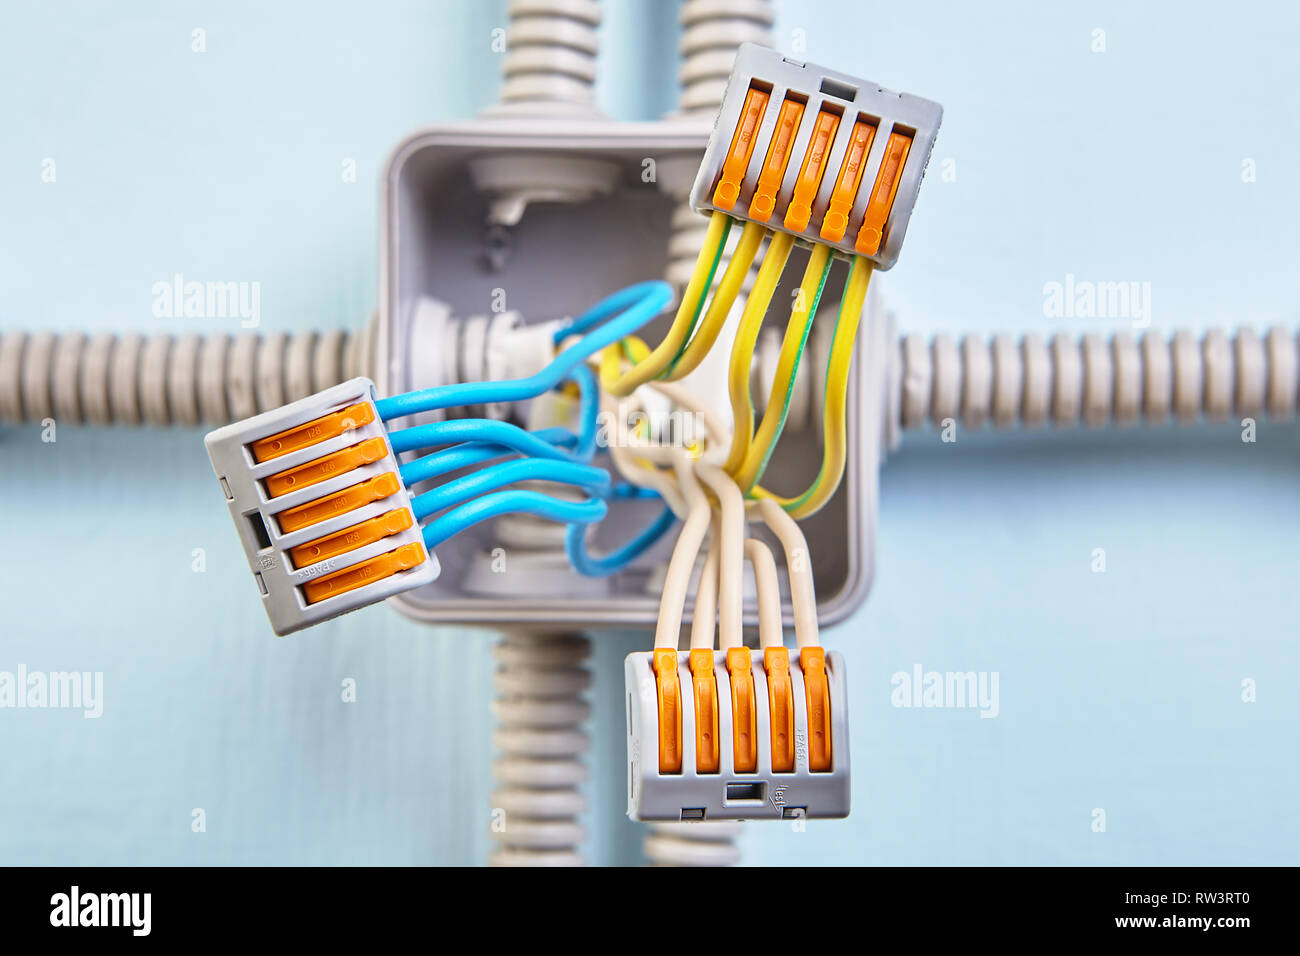 Home junction box wiring with wires connected with help of ... on battery junction block, power junction block, painless junction block, sensor junction block, concrete junction block, 4 post junction block, cable junction block,